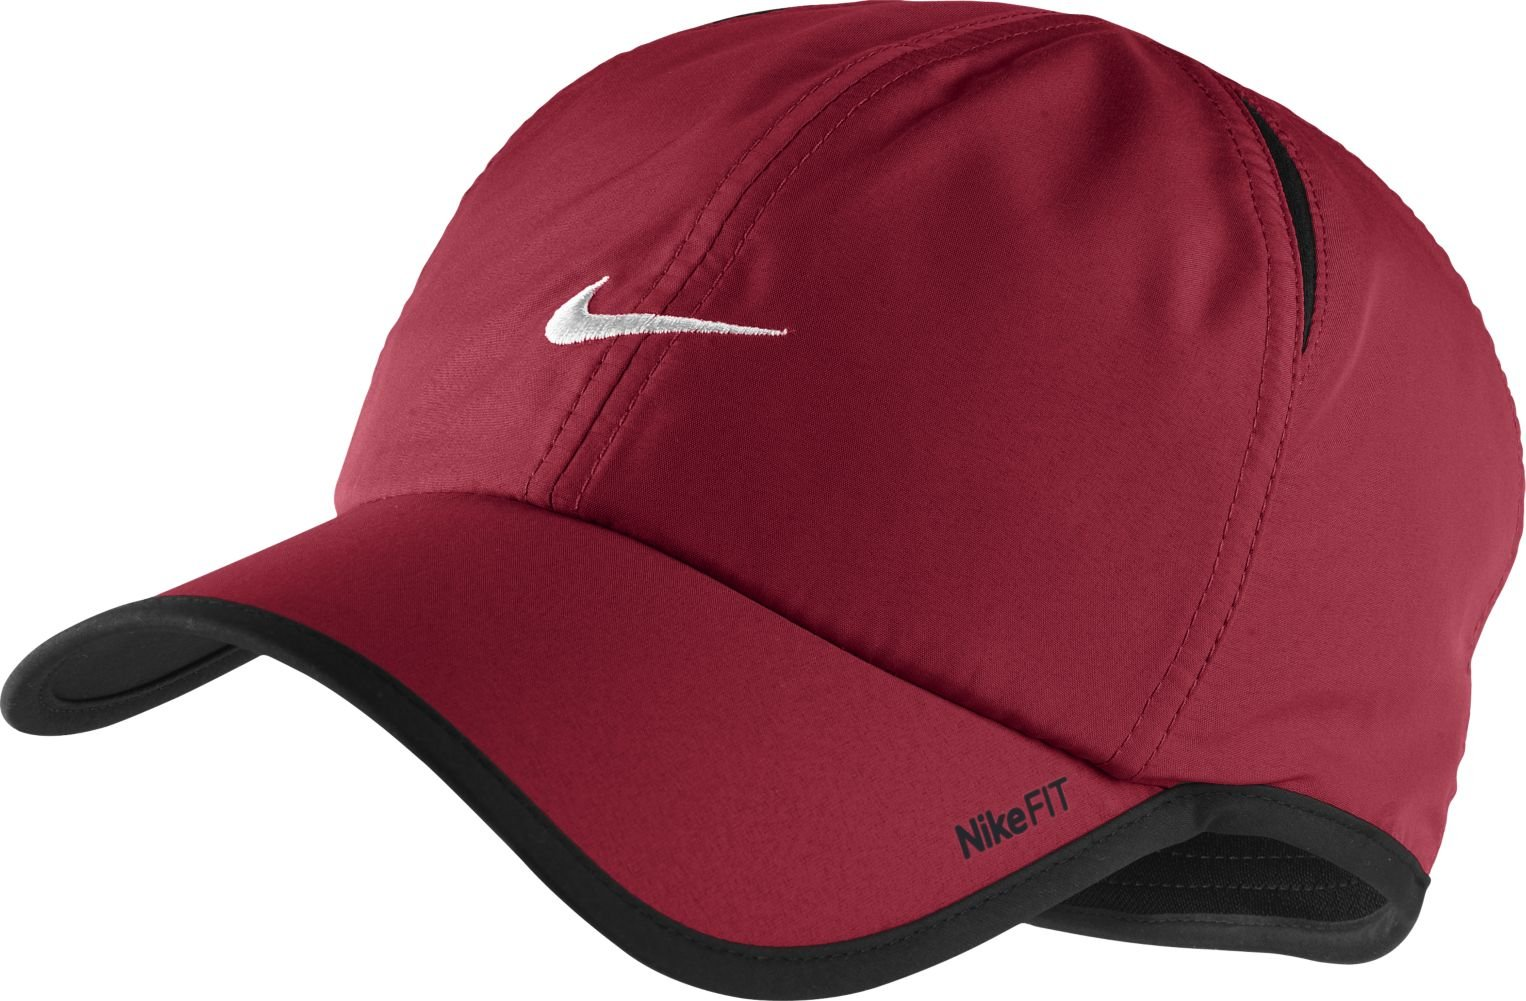 Nike Feather Light Cap (One Size, Red) by NIKE